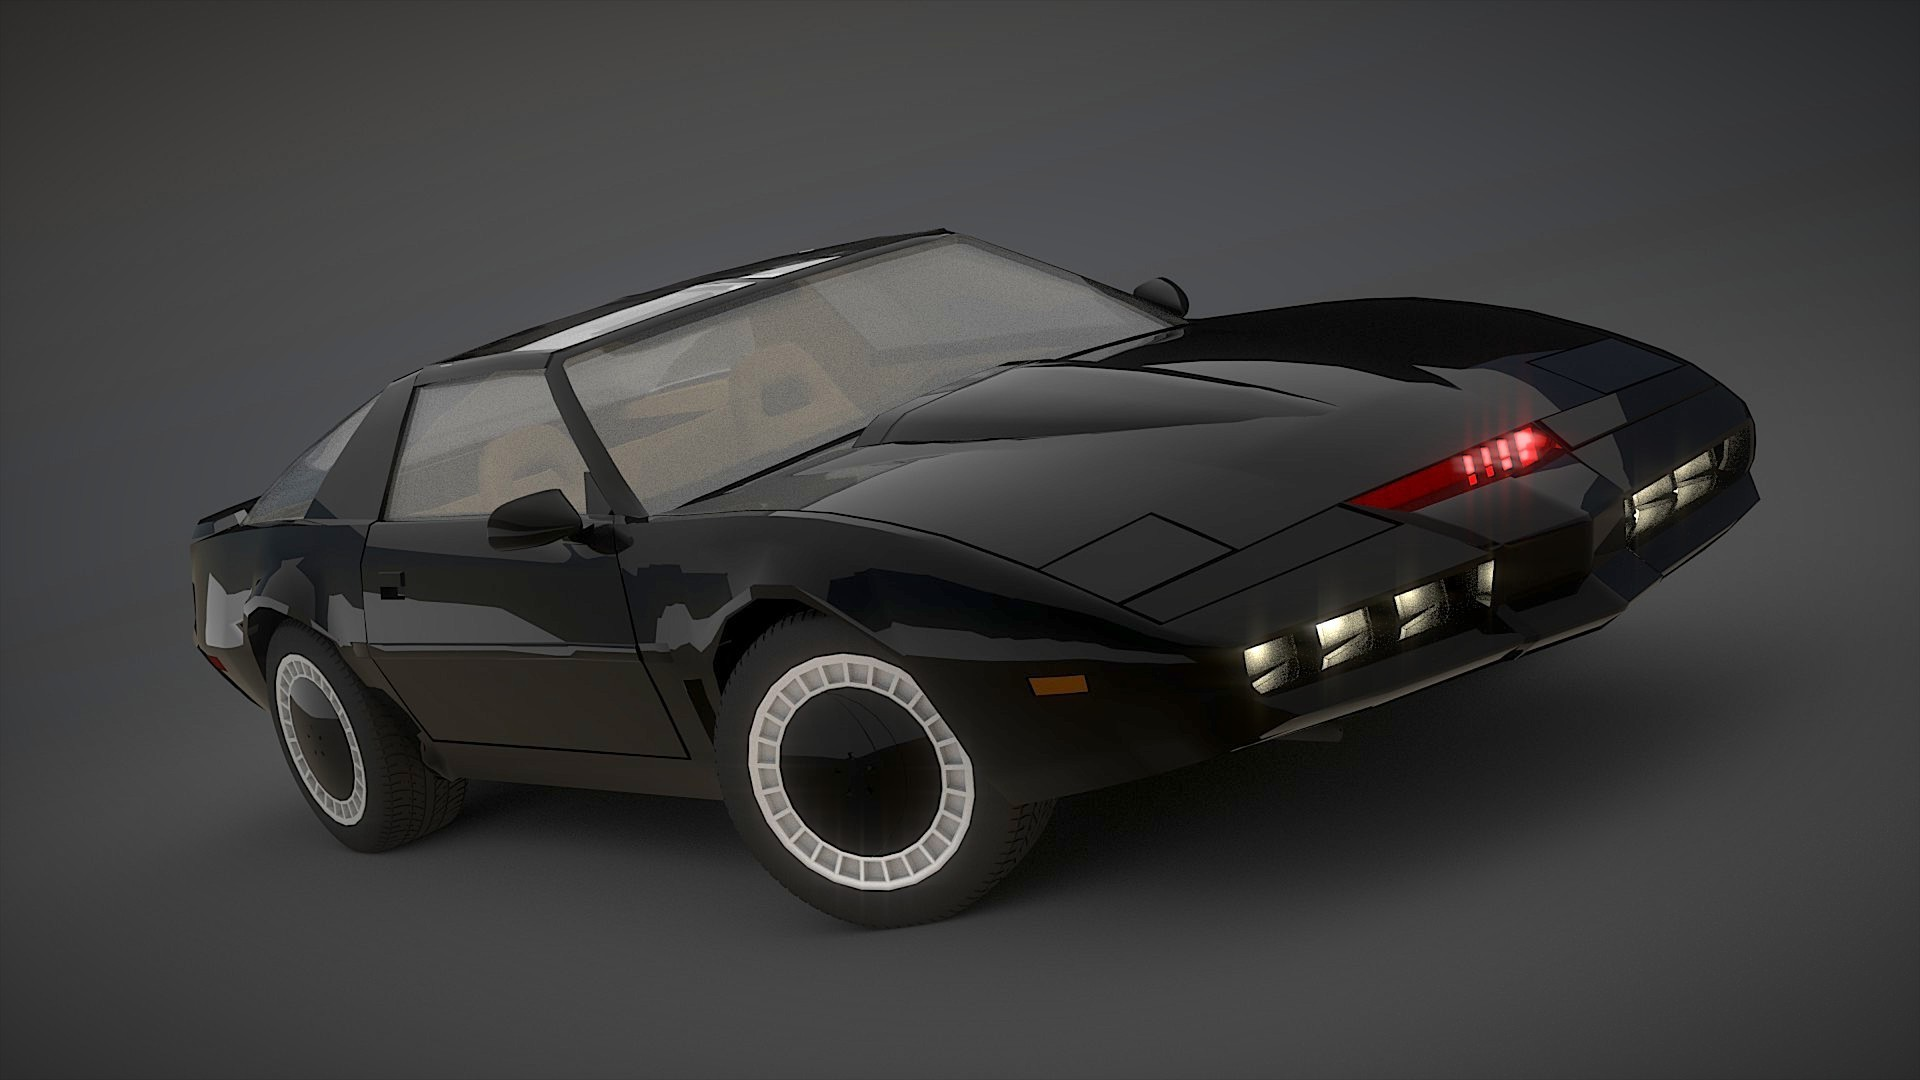 Knight Rider Car Wallpaper (64+ pictures)